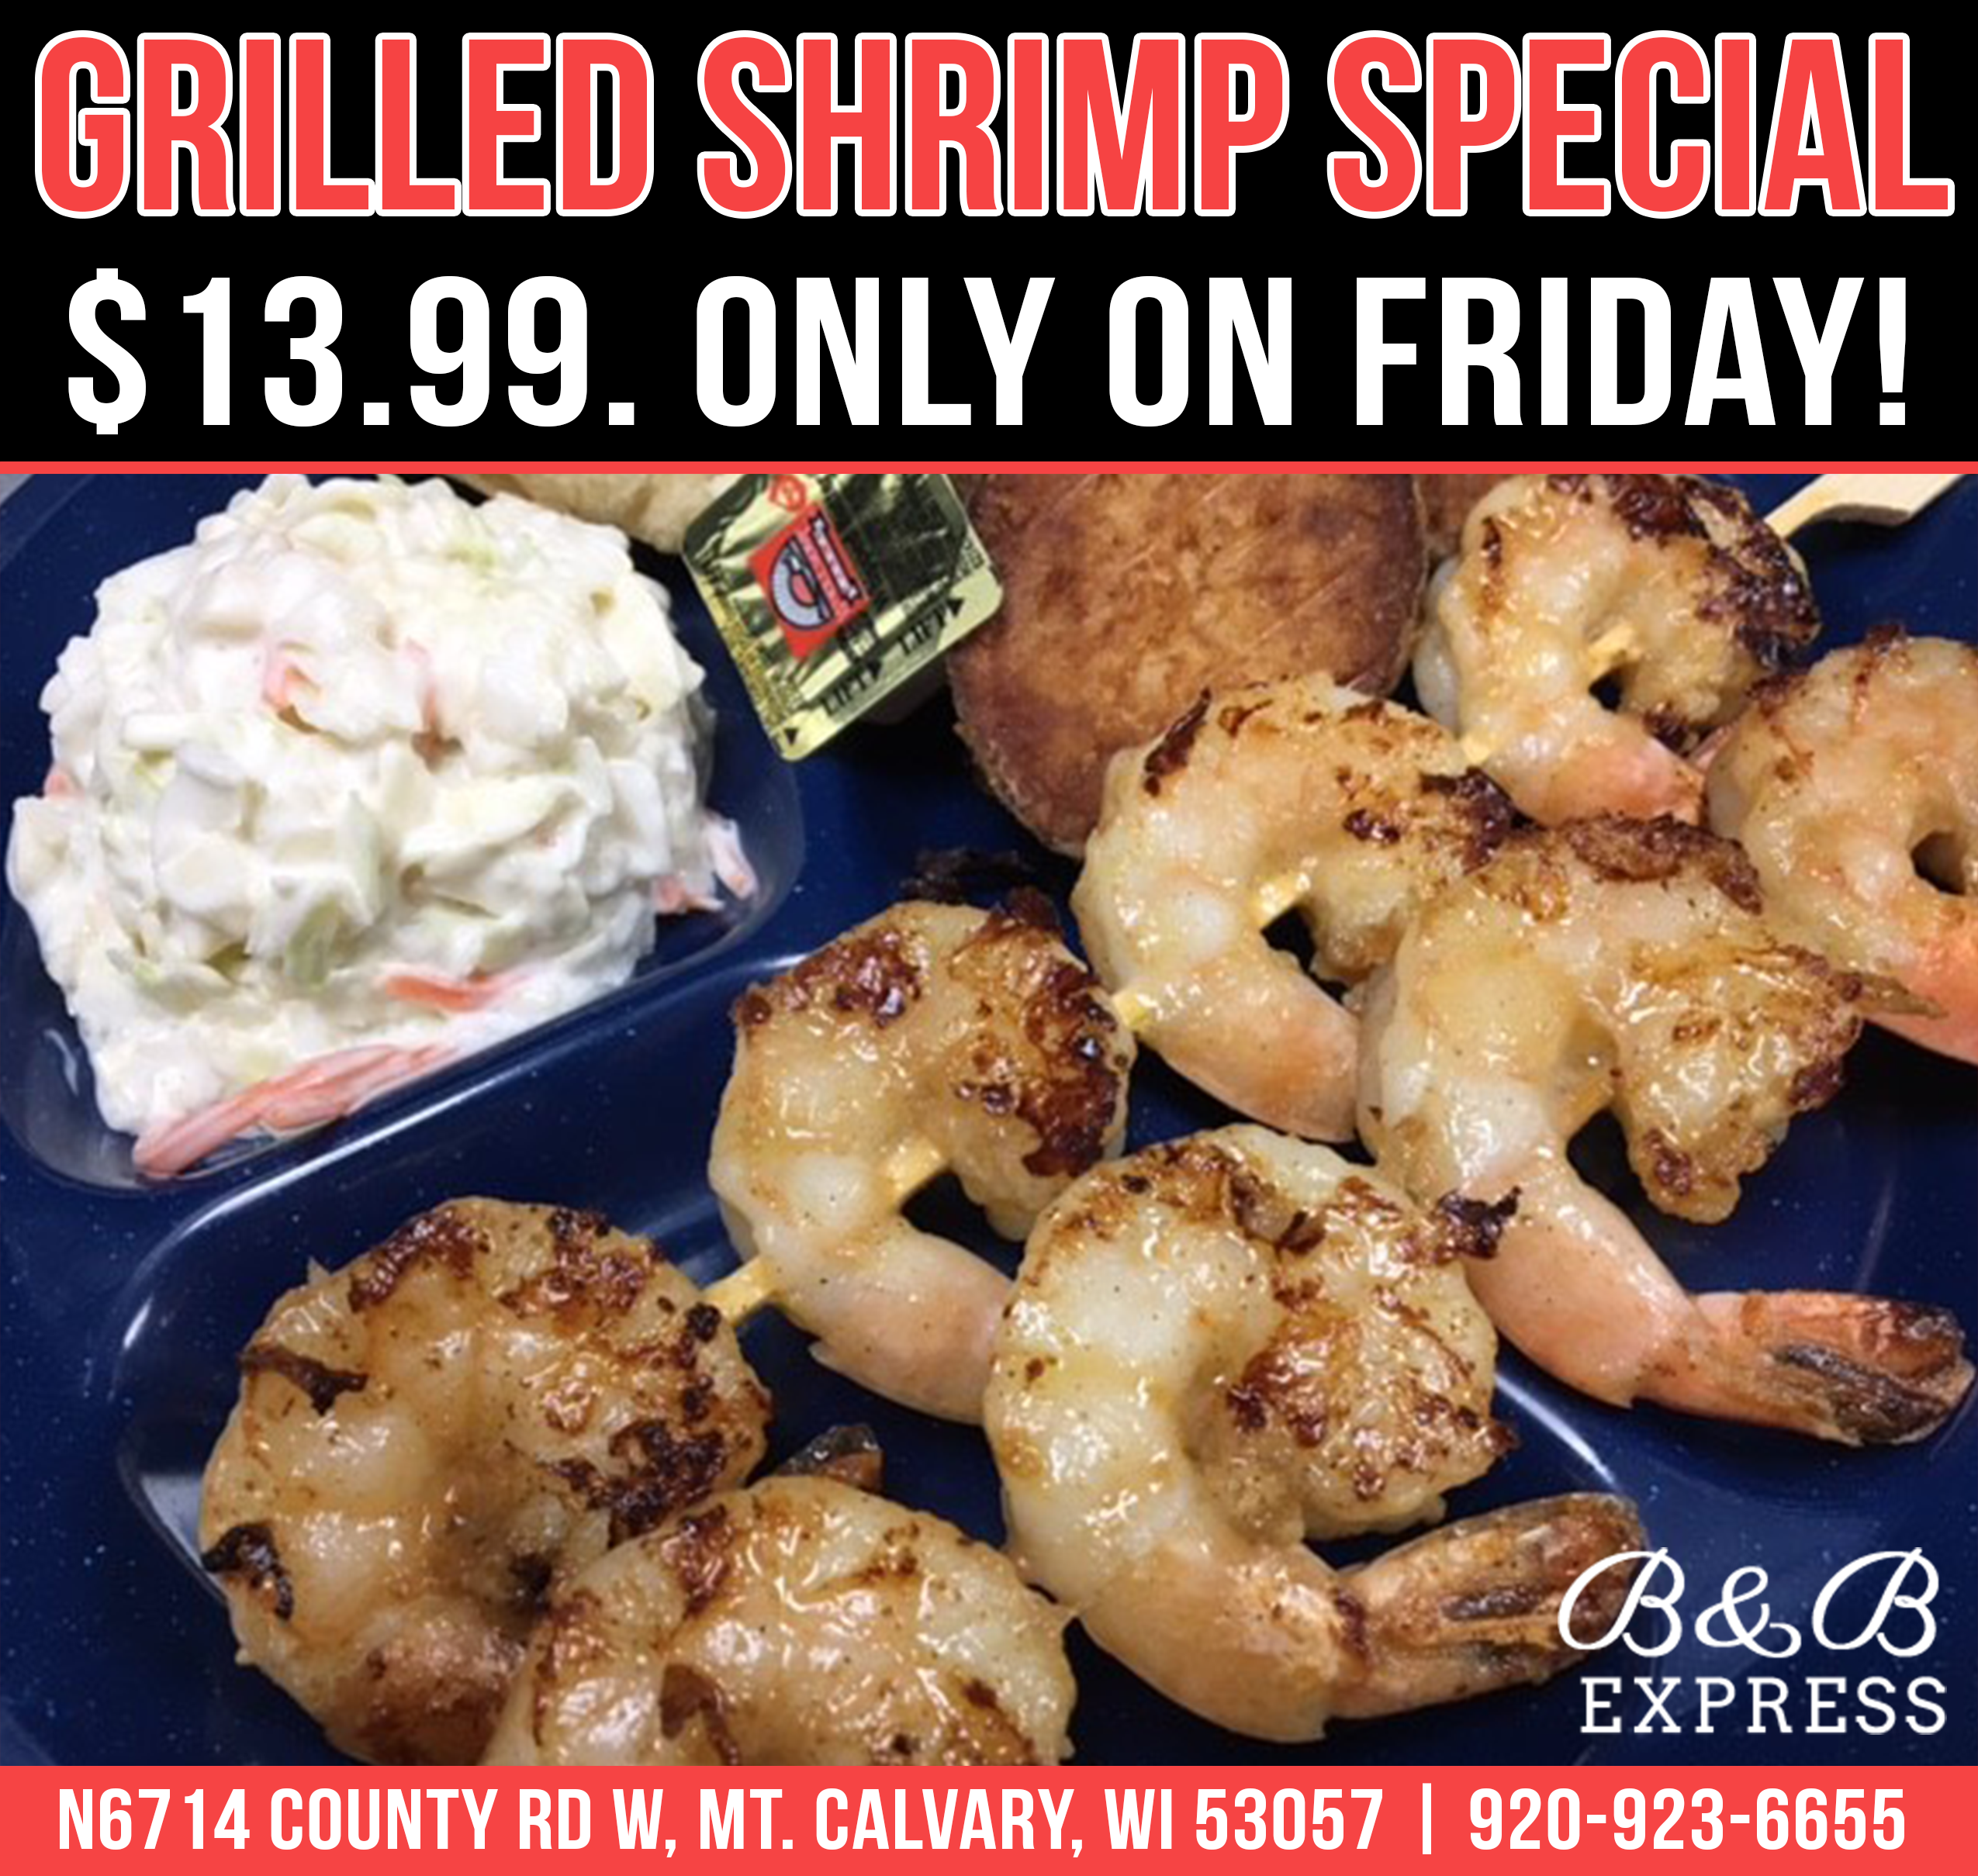 Grilled shrimp special. $10.99 only on Friday. N6714 County Road West, Mount Calvary, Wisconsin 53057. (920) 923-6655